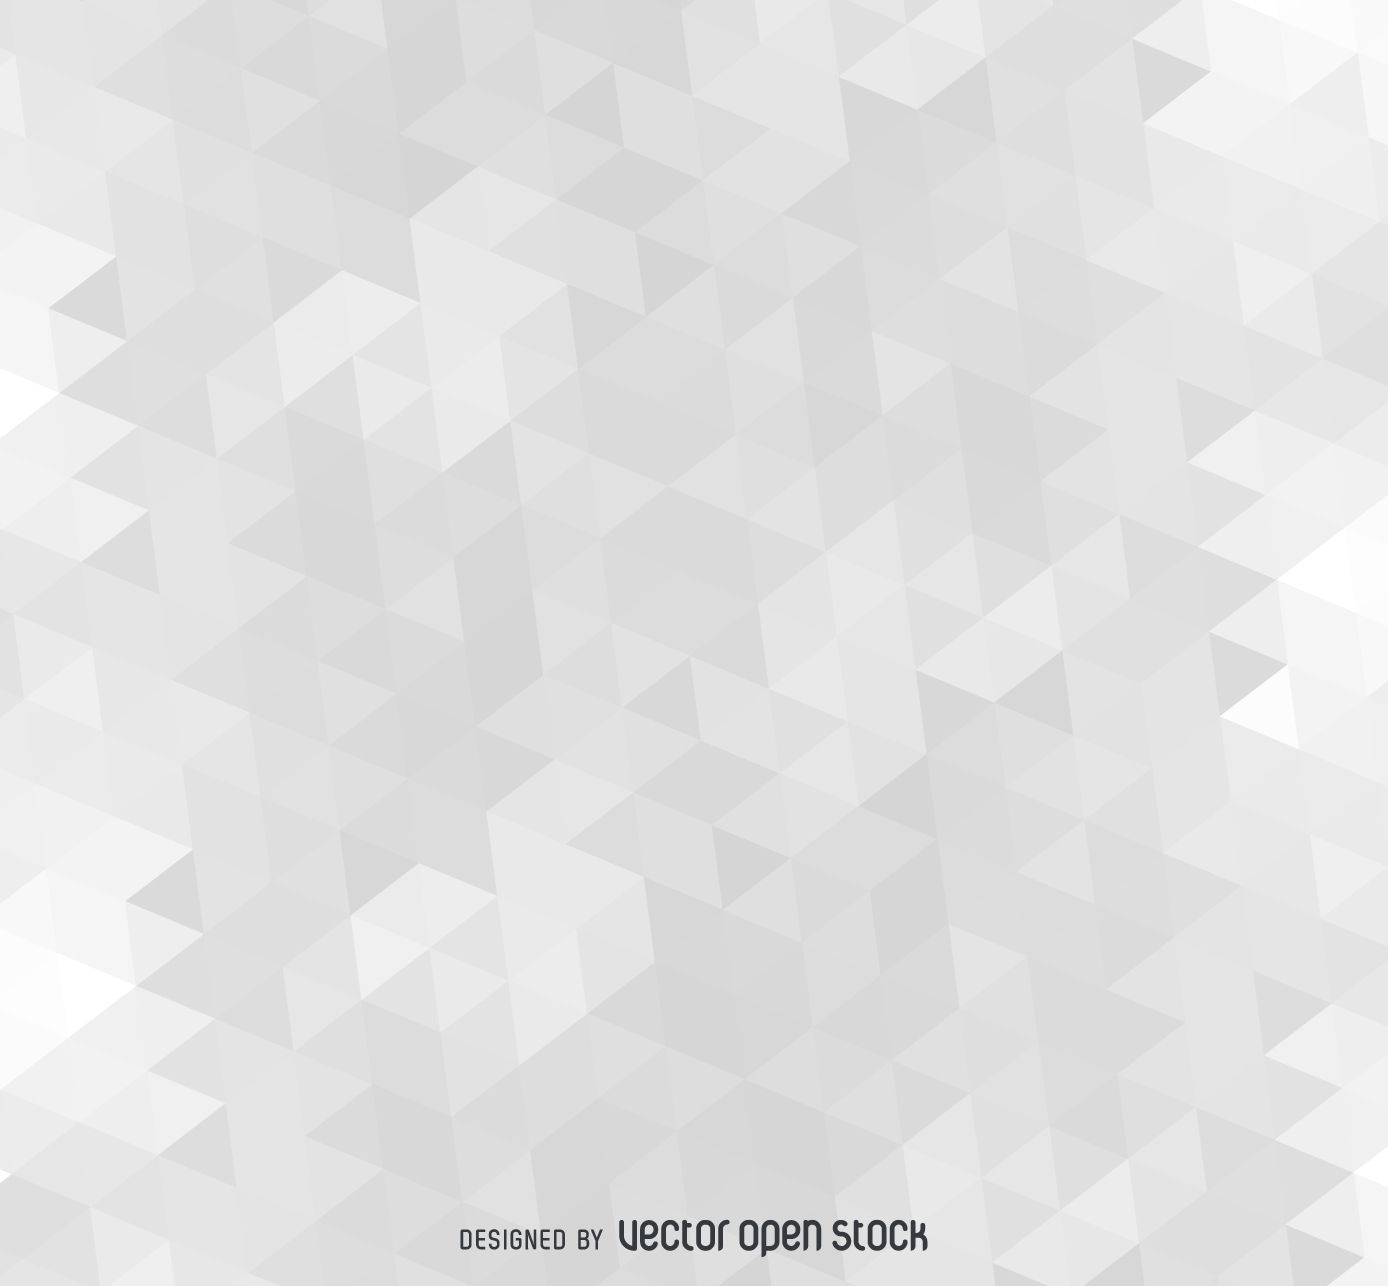 Abstract Background In Tones Of Gray Design Features Small